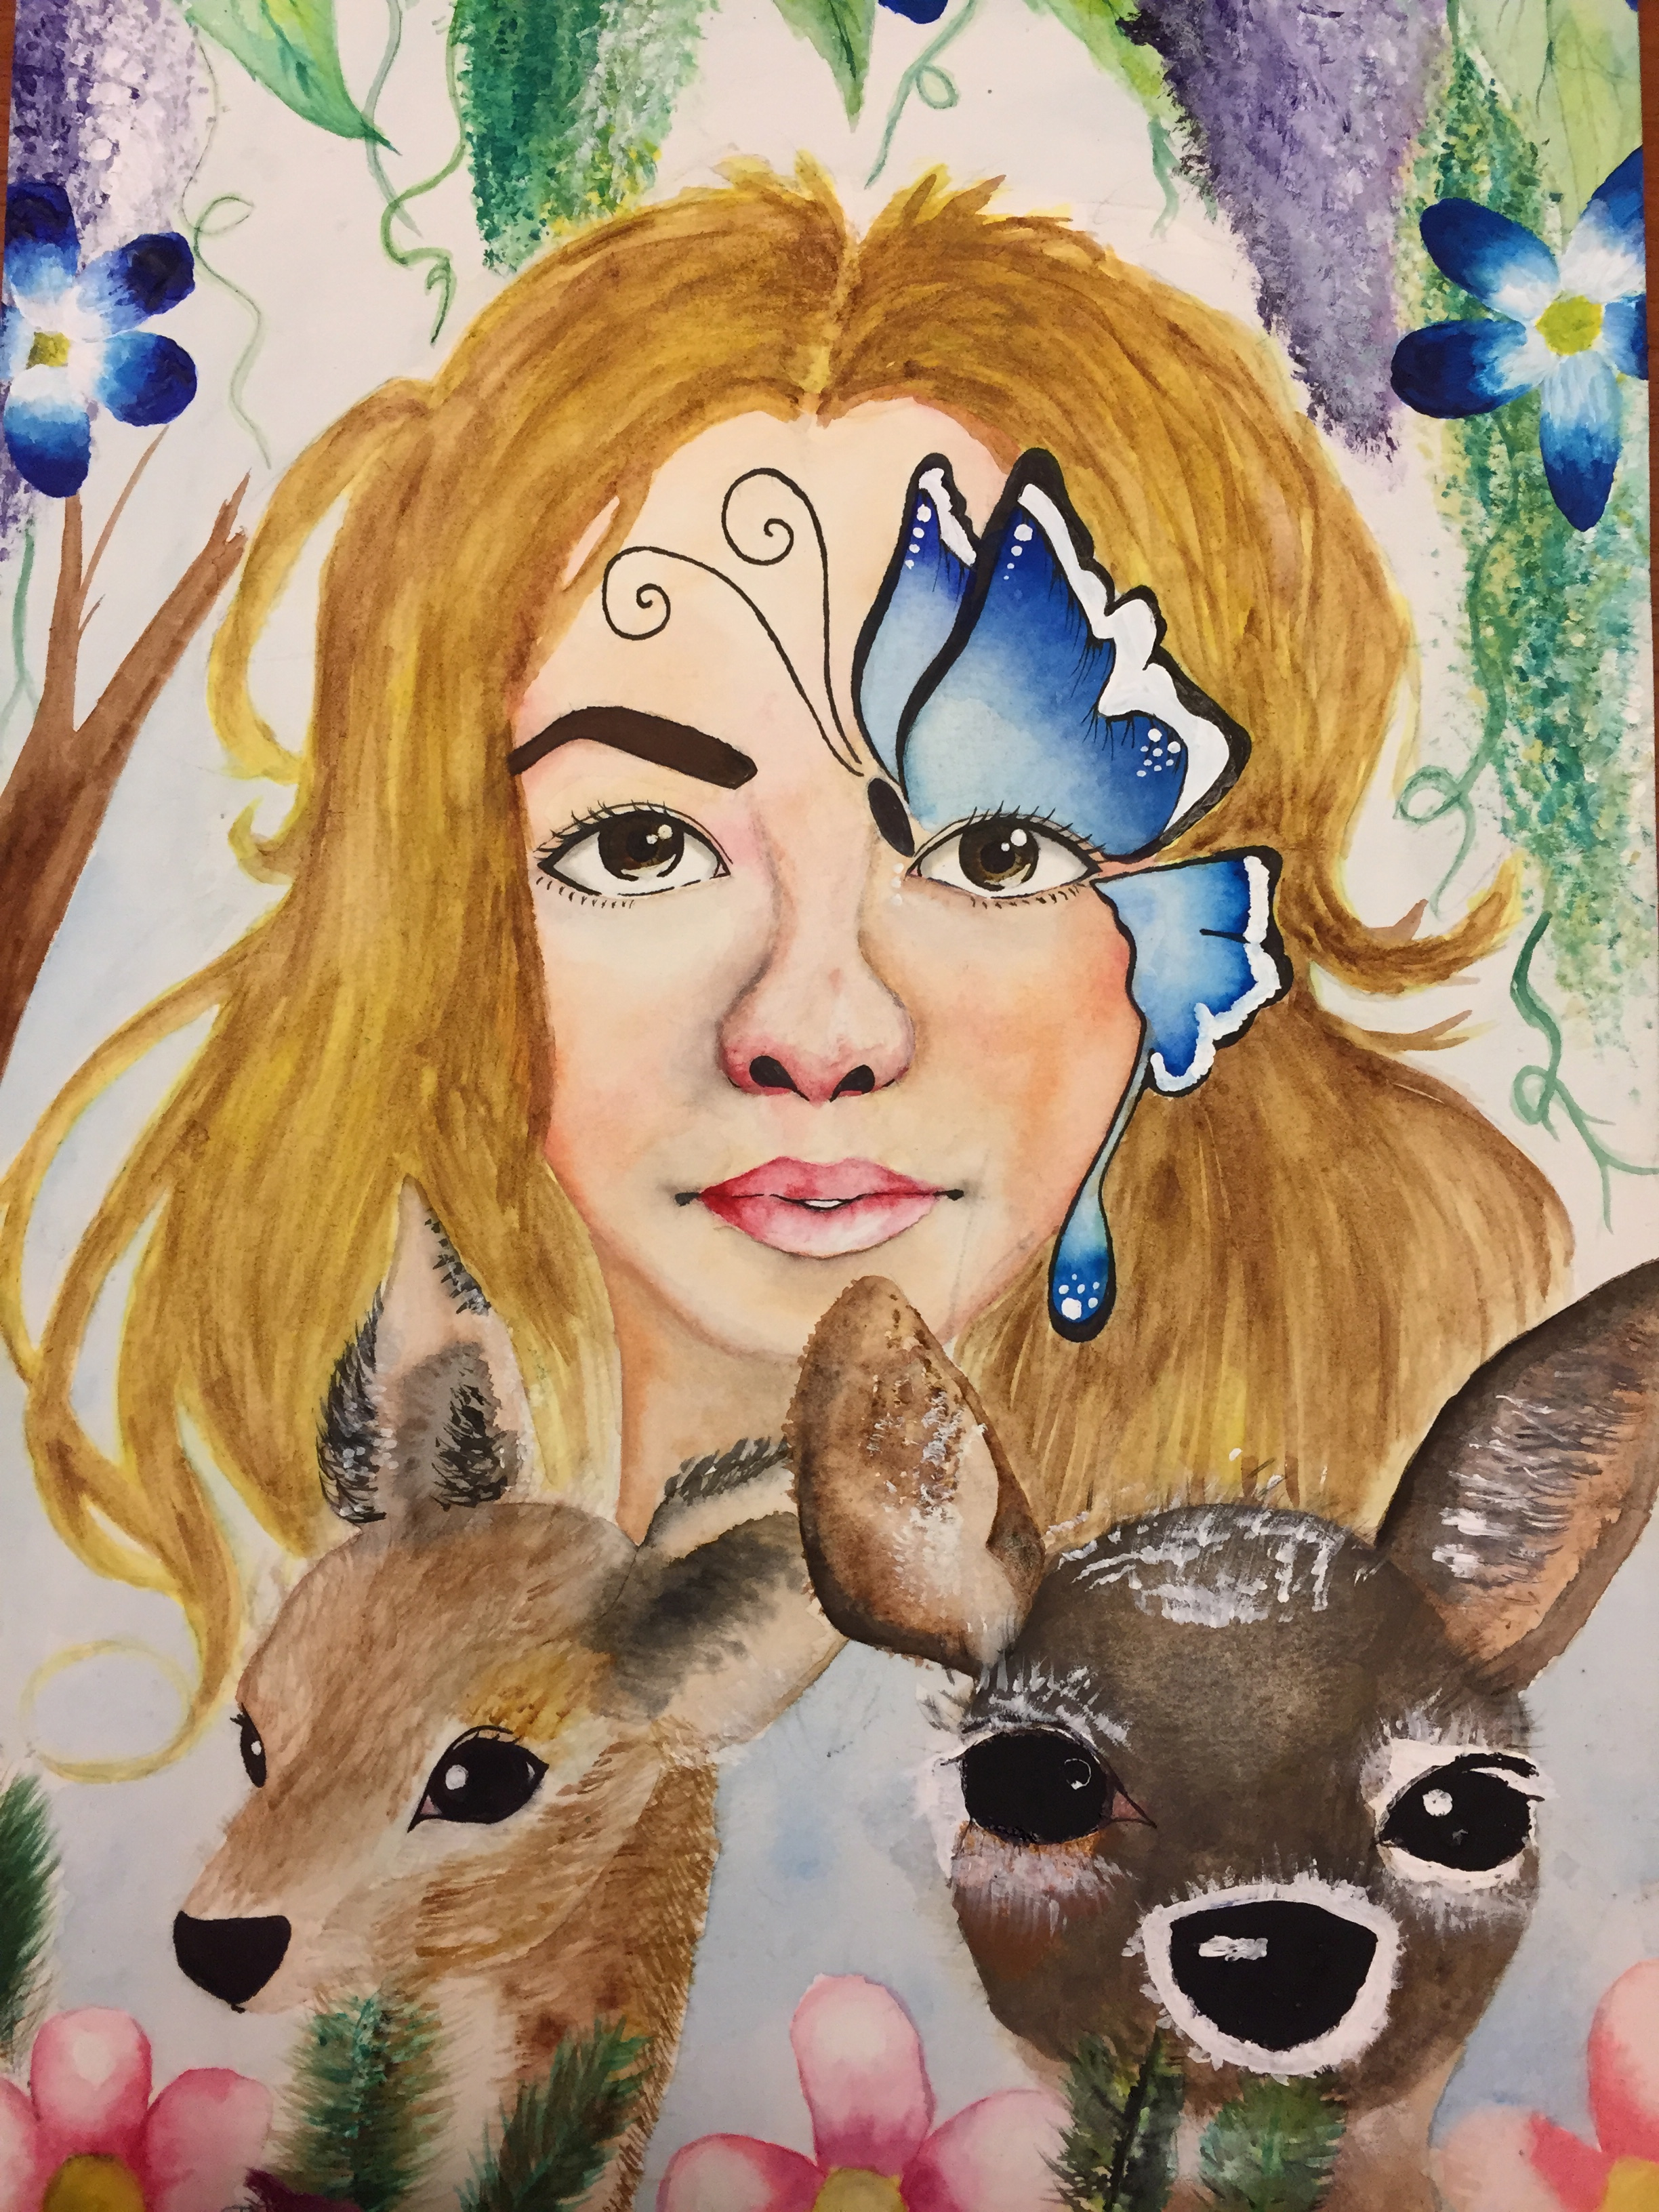 """Untitled"" by Ashley No, age 15. 2015 Art Grand Prize Winner Category IV. Bayside, New York"